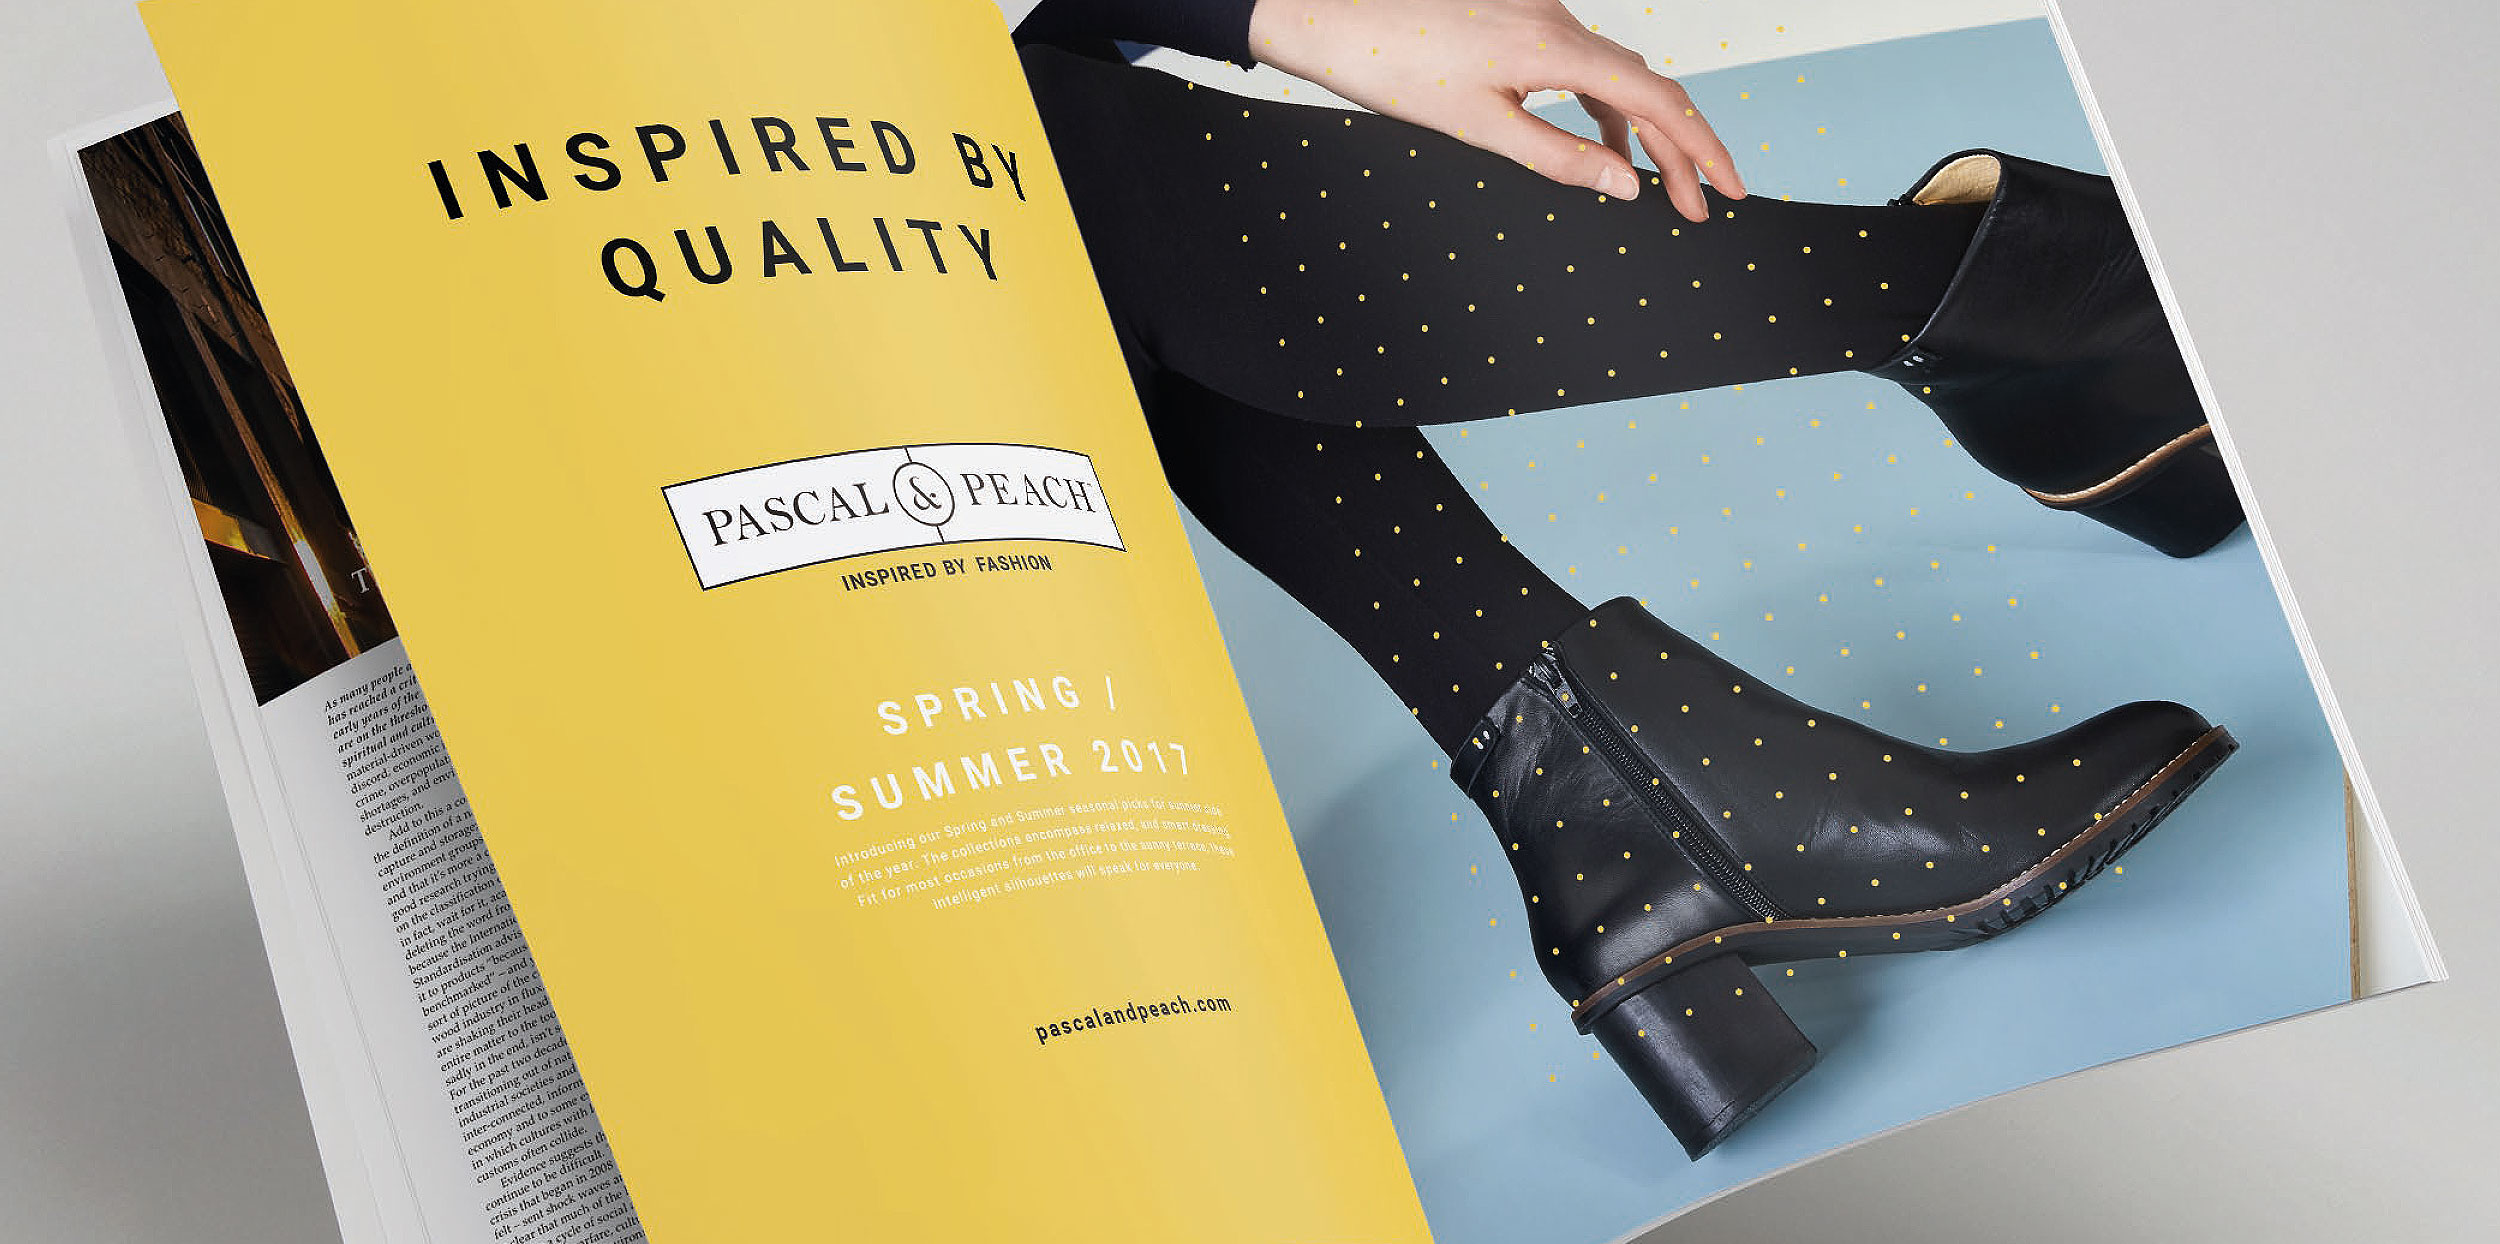 Pascal-and-Peach-Fashion-Branding-Parramatta-Design-Handle-Sydney_17.jpg